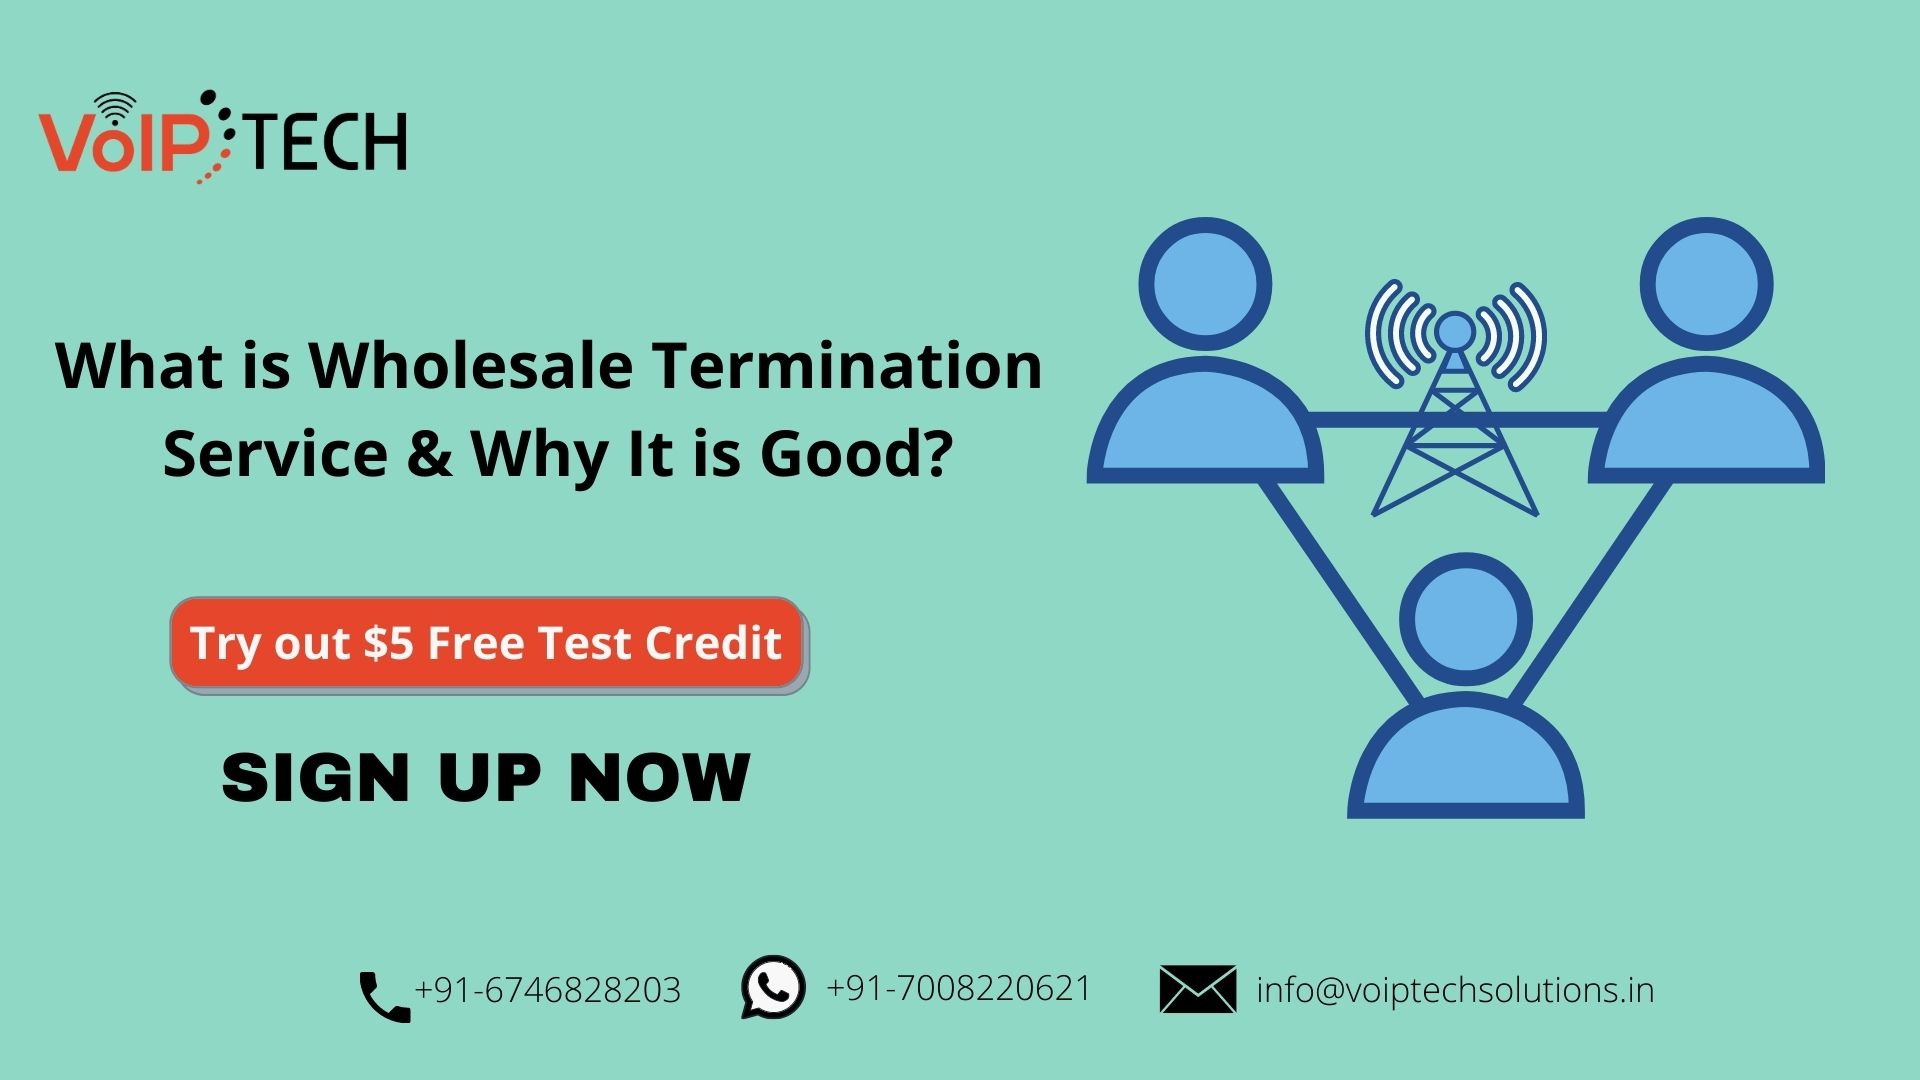 Wholesale Termination Service, What is Wholesale Termination Service & Why It is Good?, VoIP tech solutions, vici dialer, virtual number, Voip Providers, voip services in india, best sip provider, business voip providers, VoIP Phone Numbers, voip minutes provider, top voip providers, voip minutes, International VoIP Provider